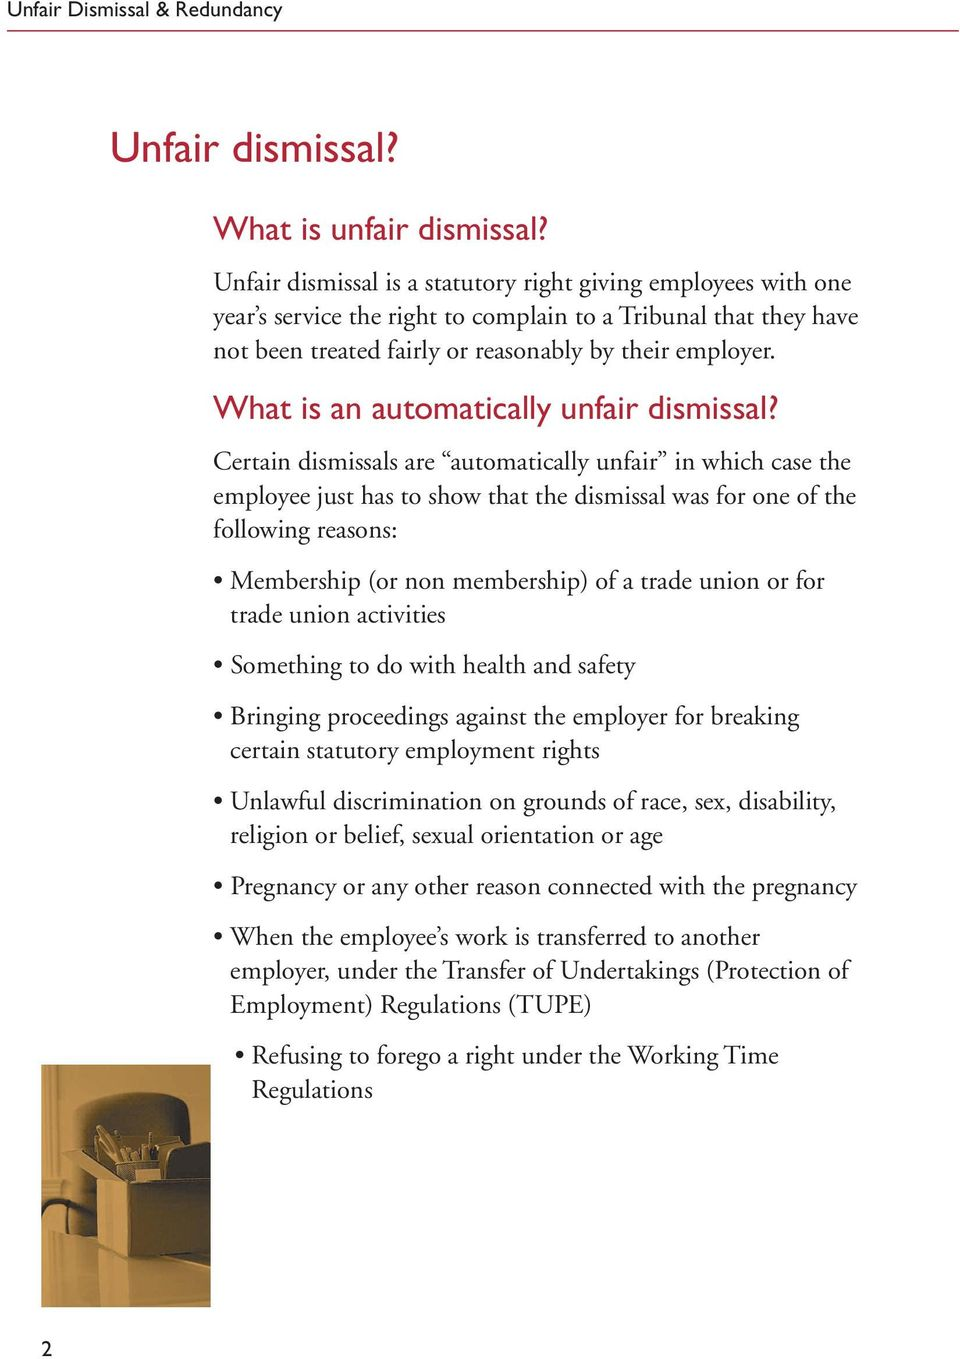 What is an automatically unfair dismissal?